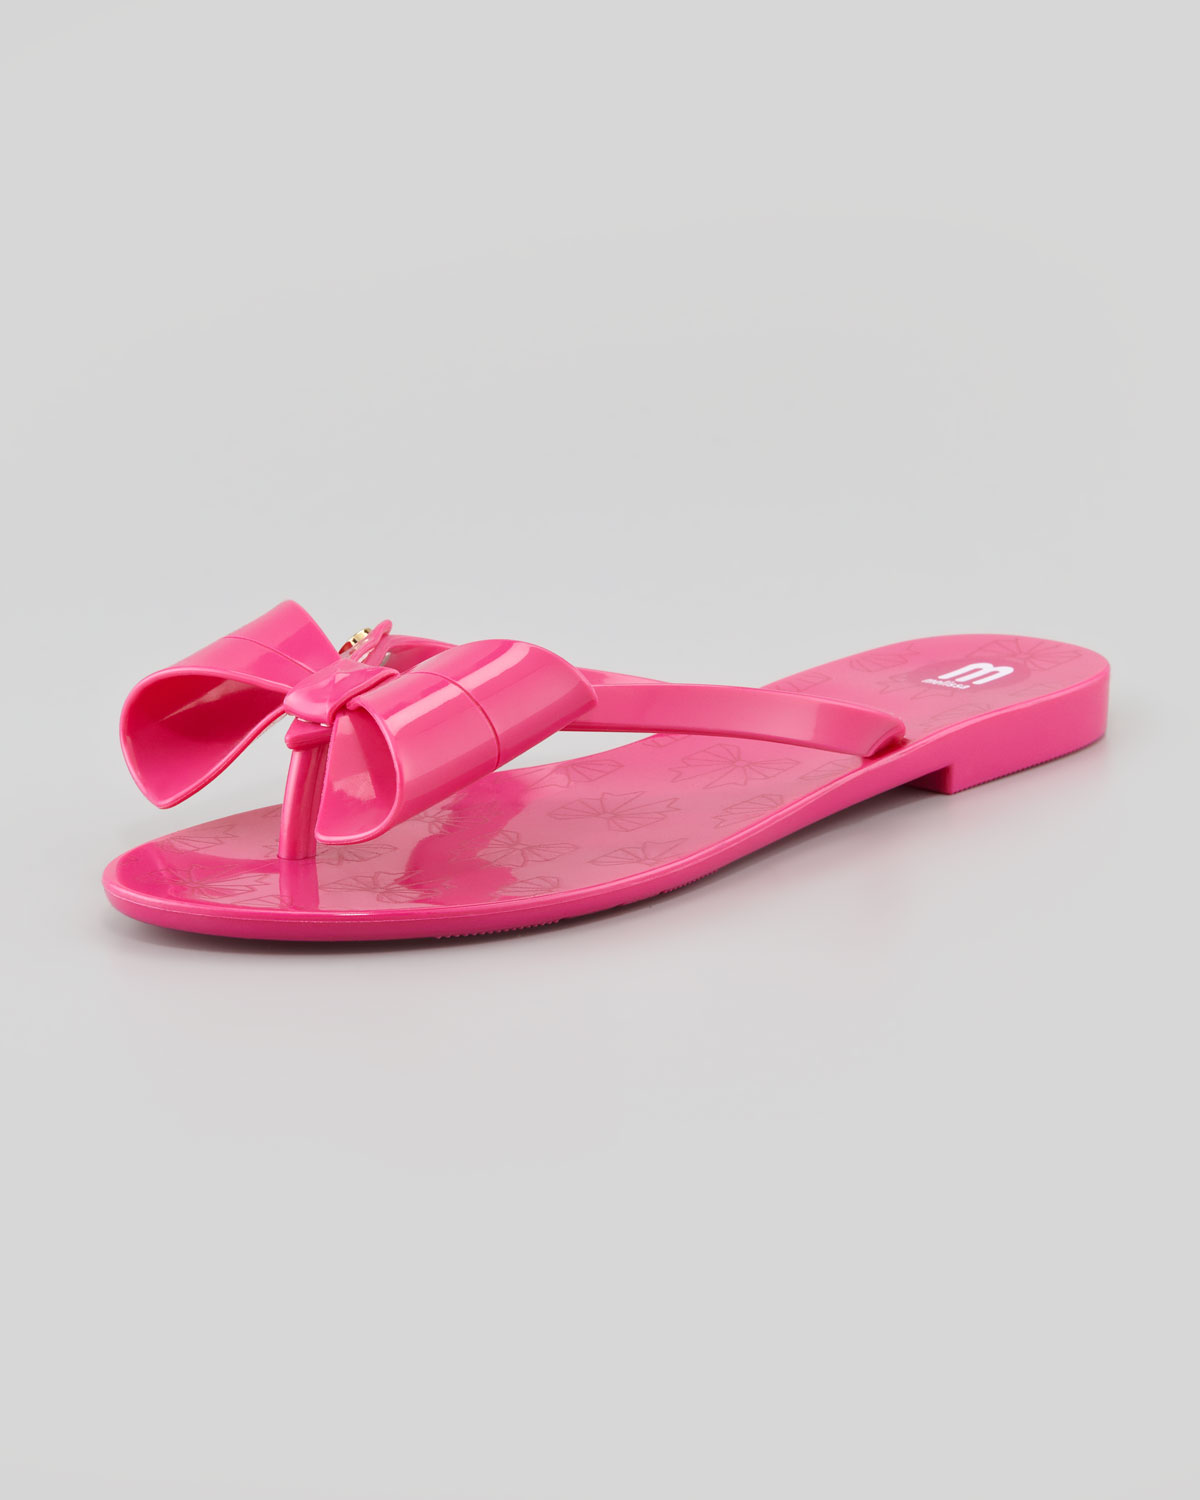 6a34f53c784a21 Lyst - Melissa Harmonic Ii Jelly Bow Thong Sandal in Pink